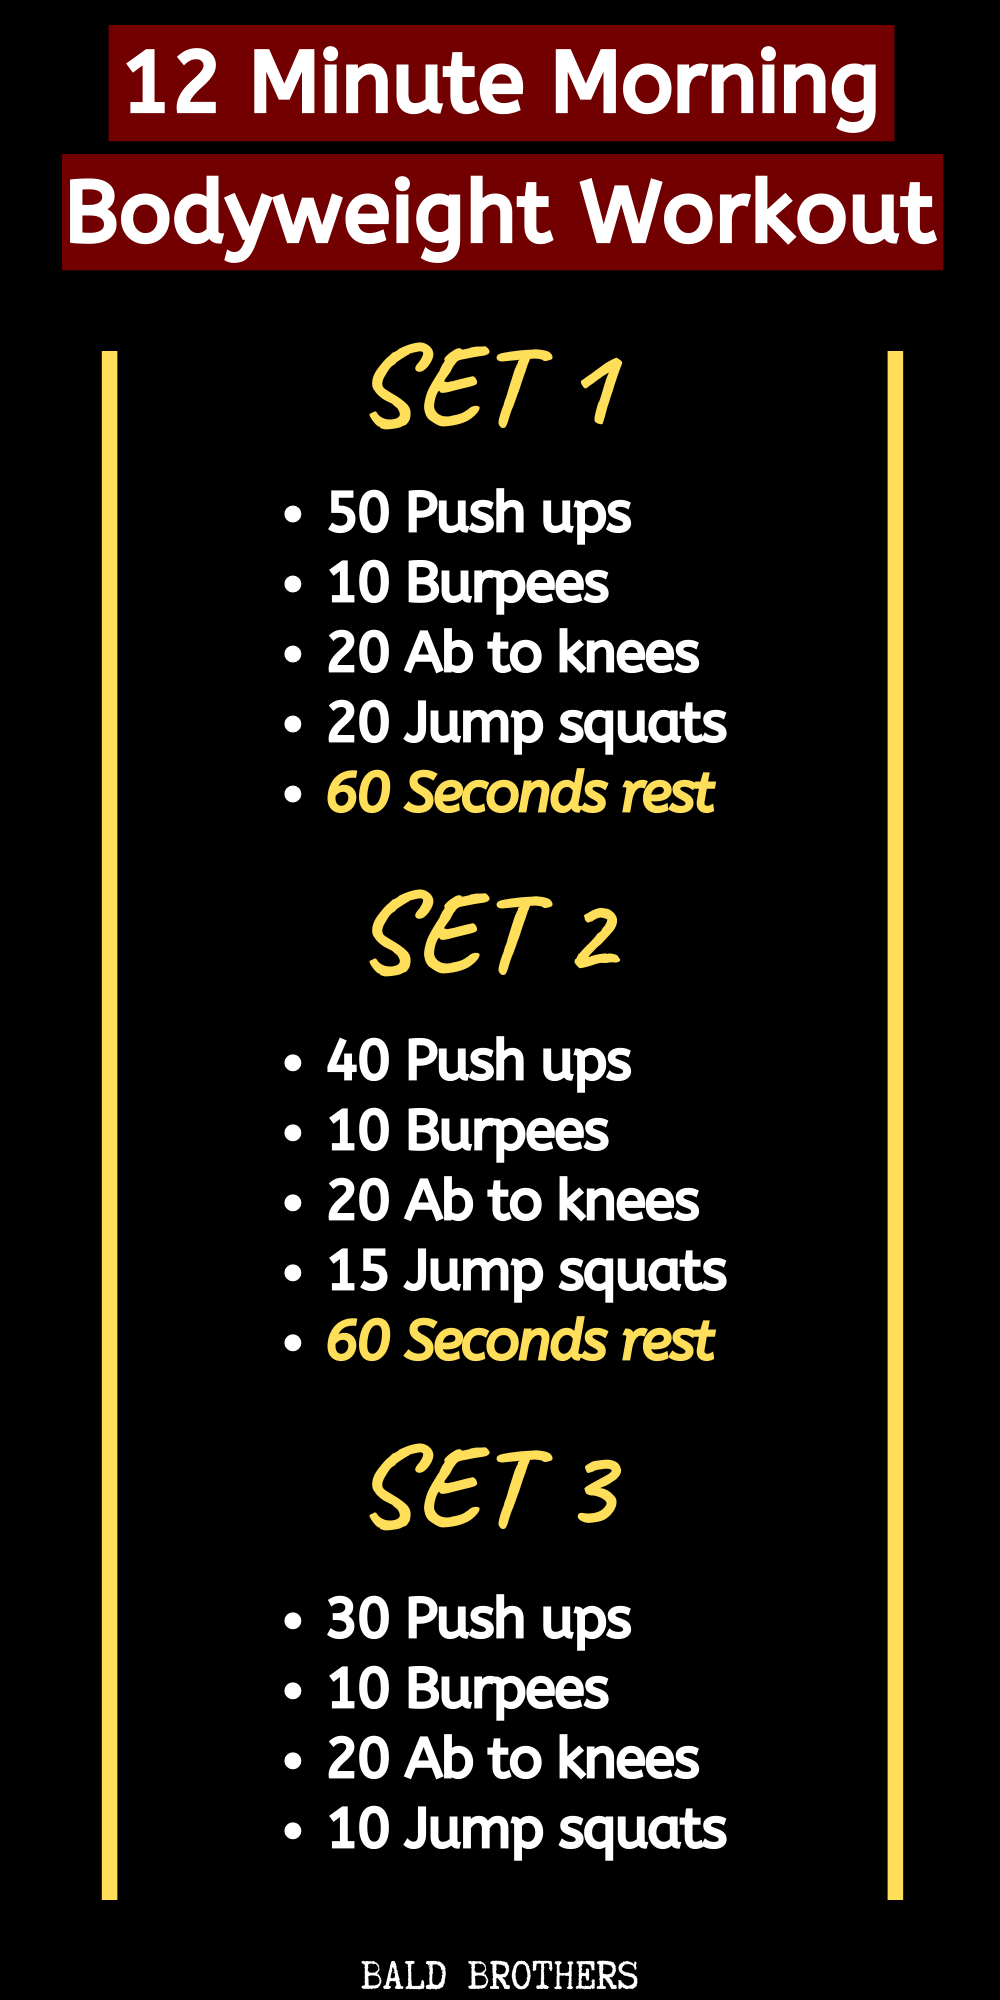 12 Minute Morning Blast Bodyweight Workout To Kick Start Your Day!